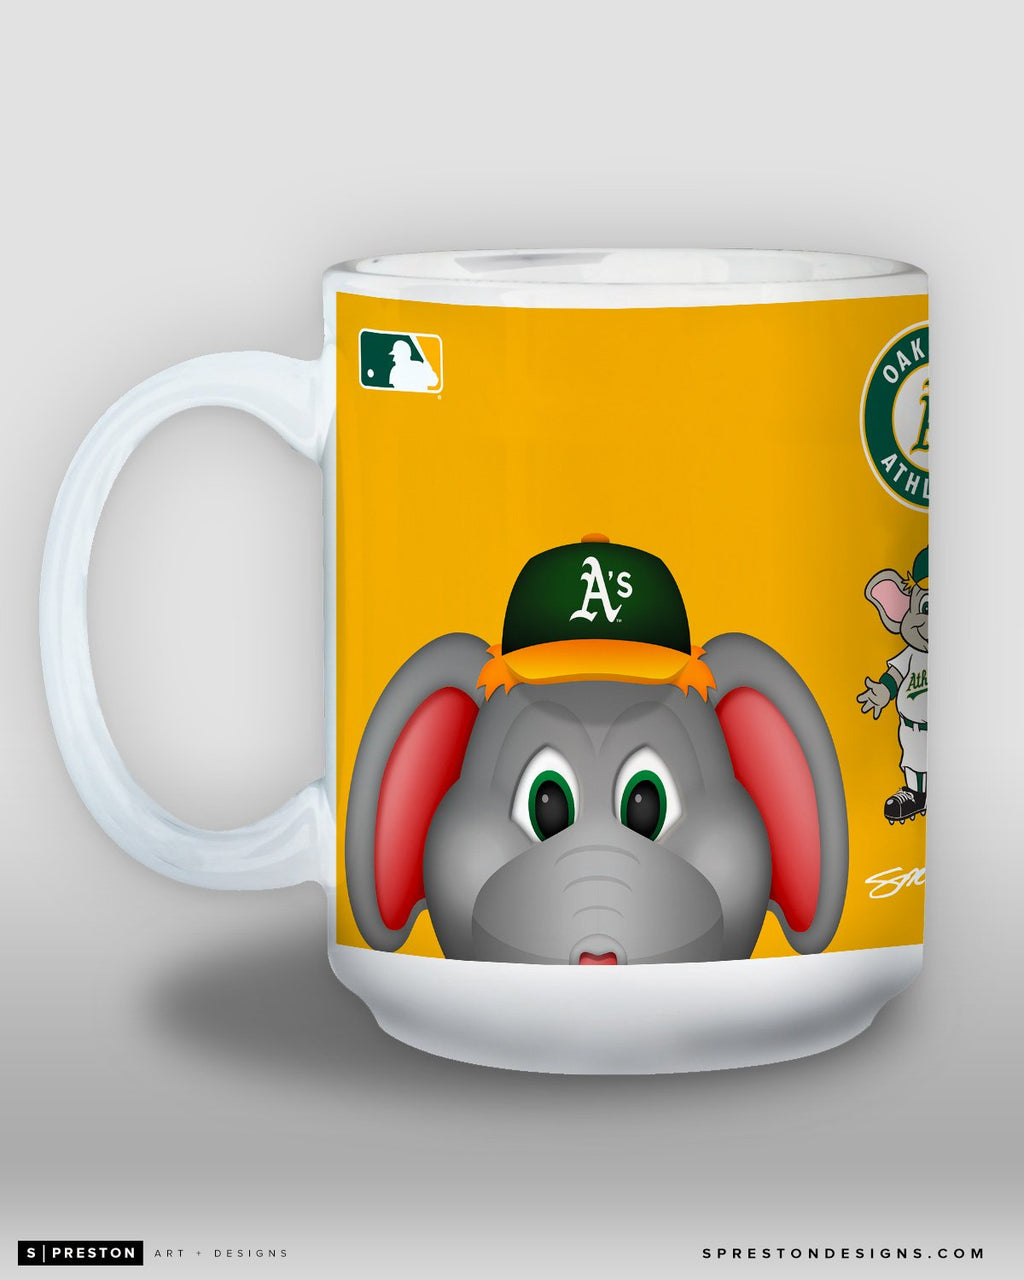 Minimalist Stomper Coffee Mug - MLB Licensed - Oakland Athletics Mascot